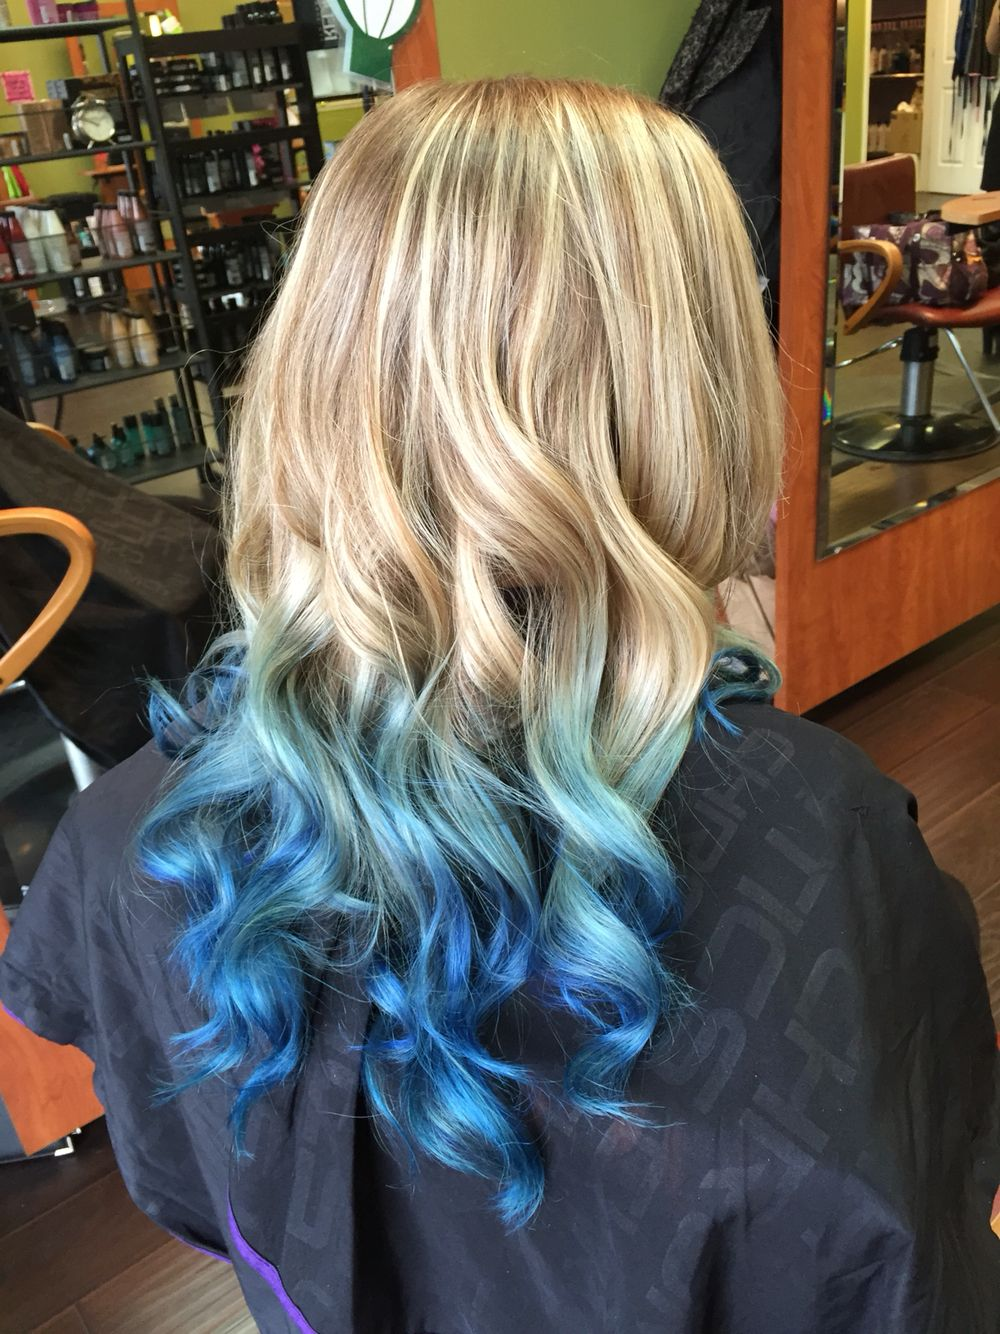 blue ombre on Tumblr |Tumblr Blue Ombre Hair